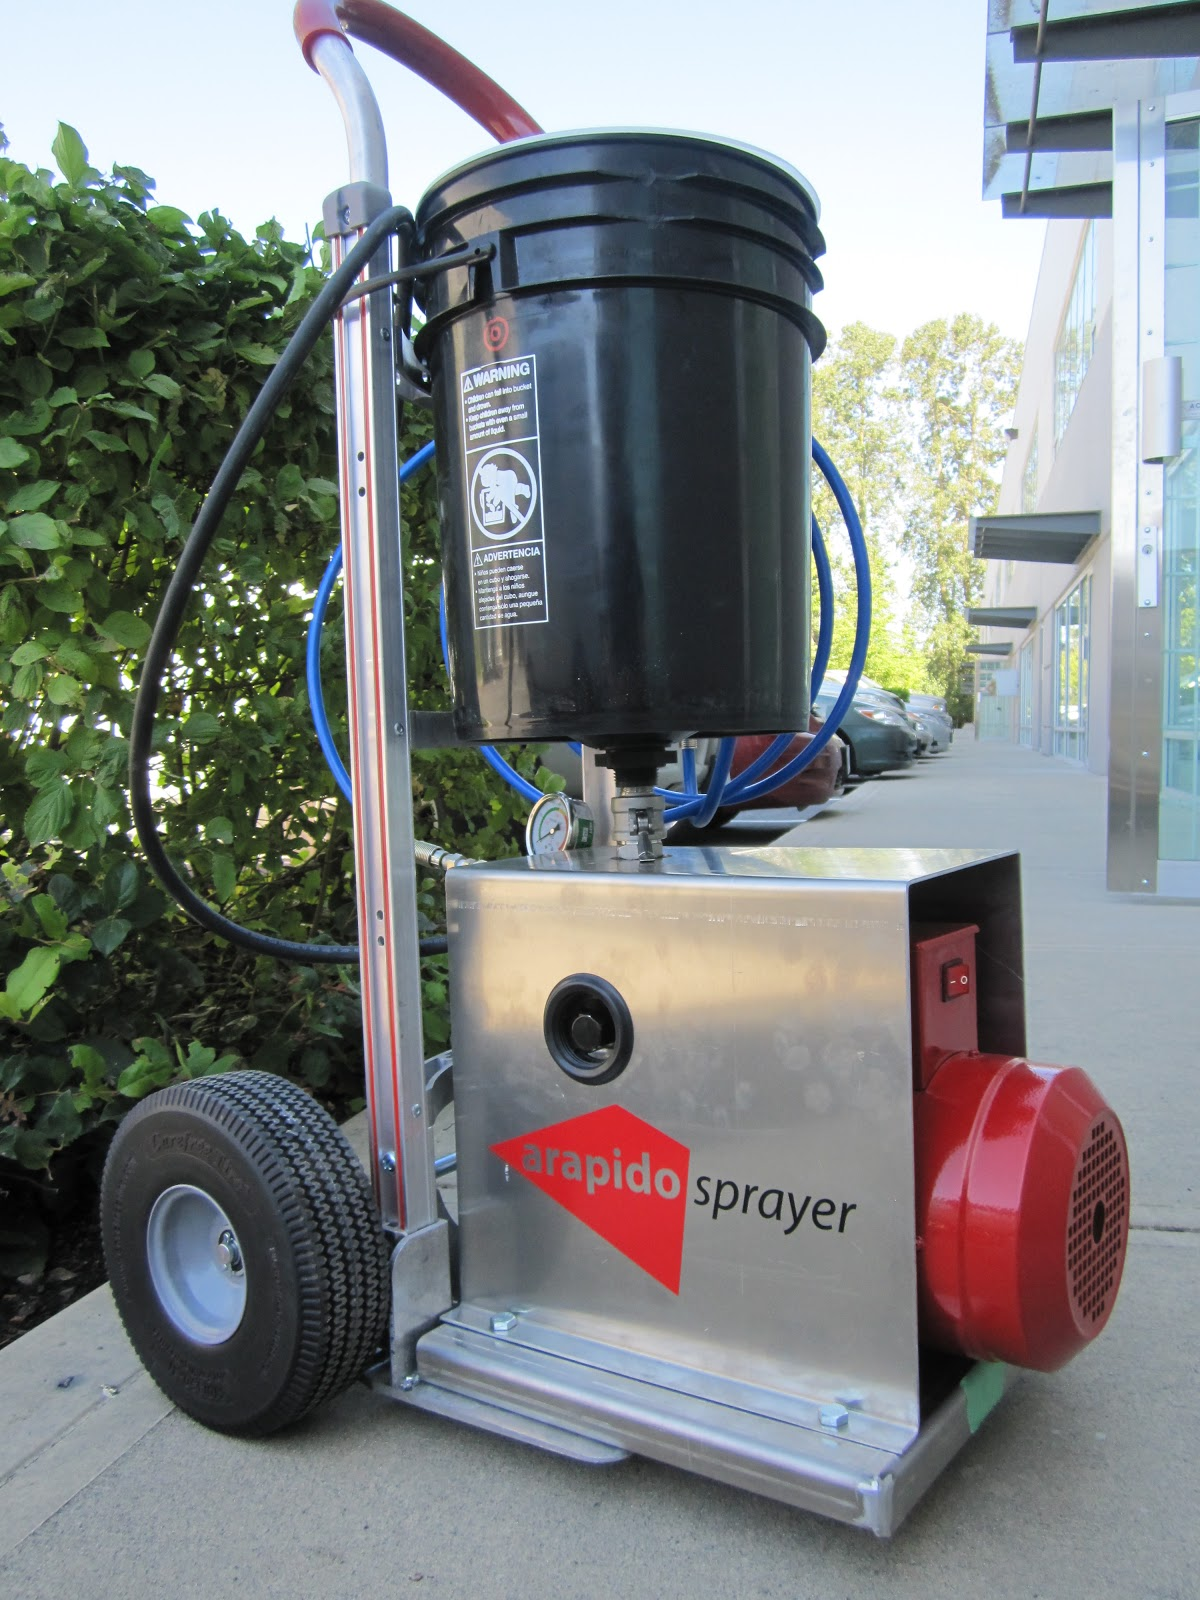 Polished concrete micro topping what is an arapido sprayer for Microtopping costi